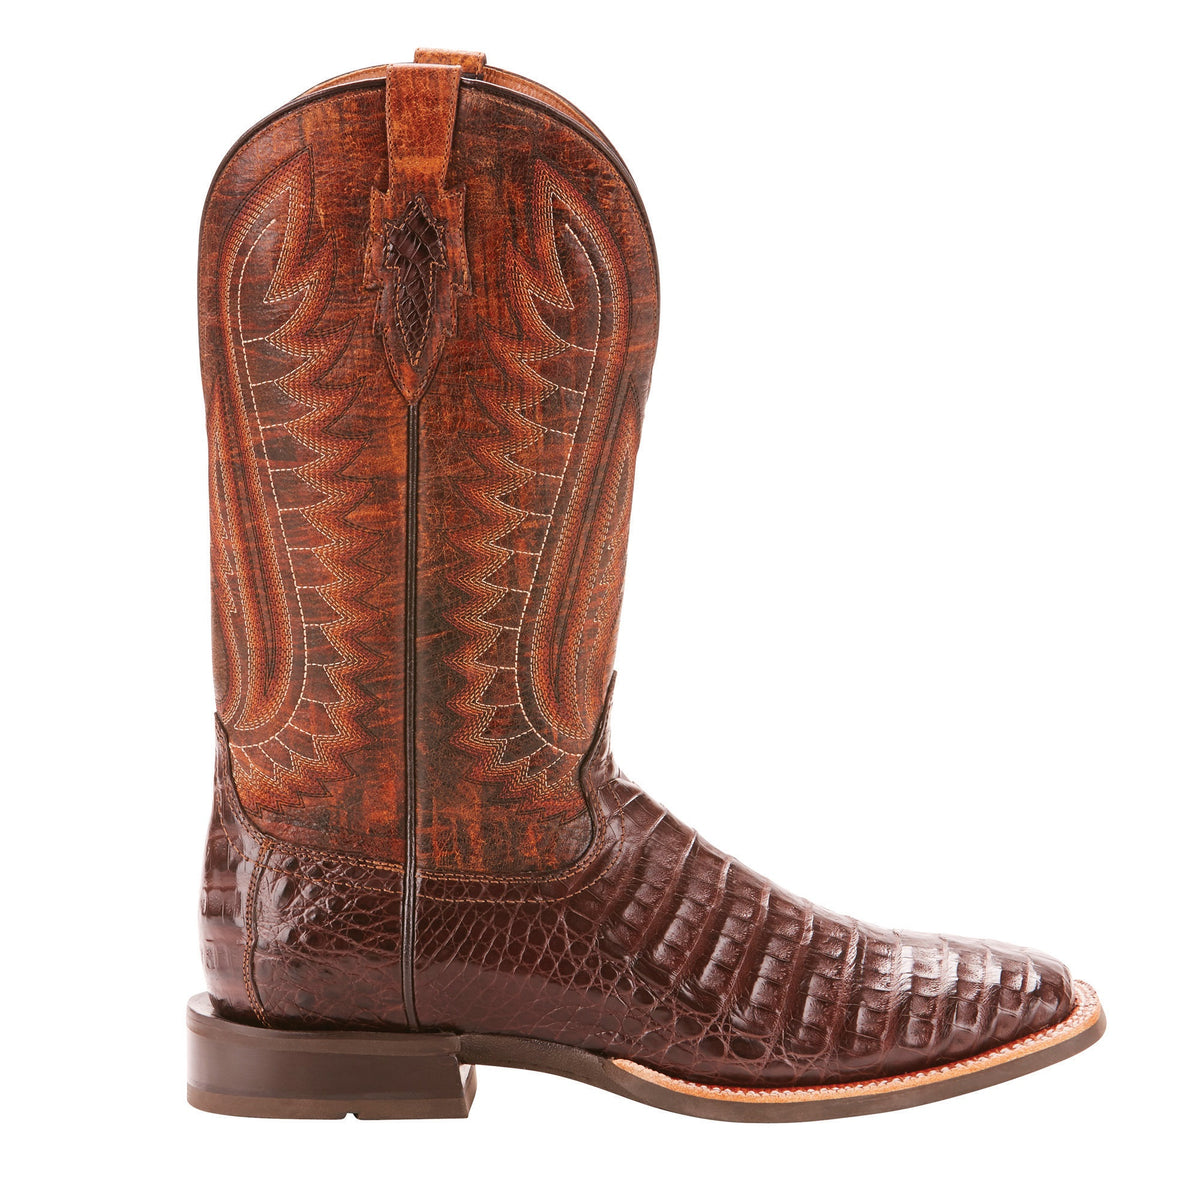 839a0f4c3f7 Ariat® Men's Double Down Caiman Belly Wide Square Toe Boots 10025088